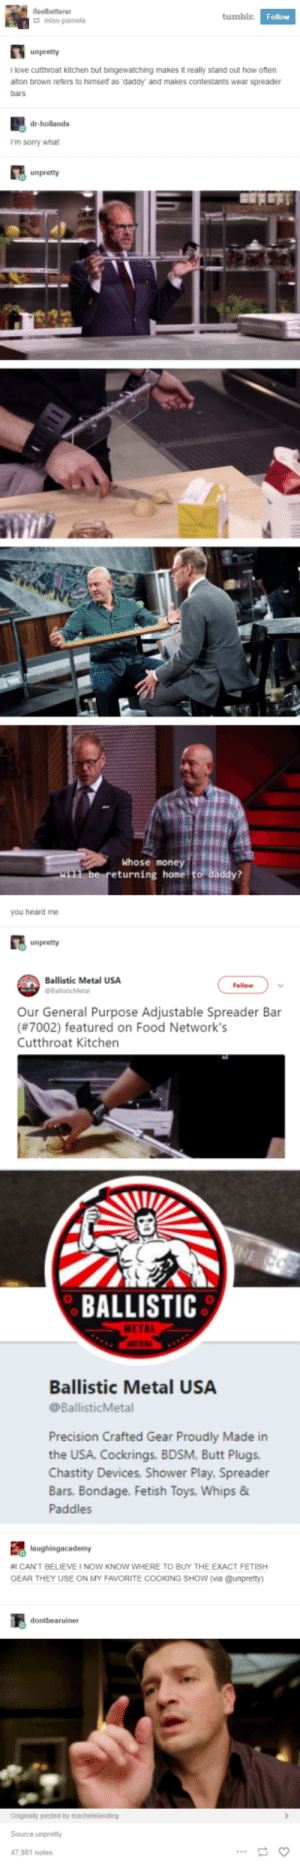 What even is this show?: tumblr  Follow  unpretty  llove cutthroat kitchen but bingewatching makes it really stand out how oten  alton brown refers to himser as daddy and makes contestants wear spreader  bars  dr-hollands  I'm sorry what  Whose money  eturning home  you heard me  unpretty  Ballistic Metal USA  Follow  Our General Purpose Adjustable Spreader Bar  (#7002) featured on Food Network's  Cutthroat Kitchen  BALLISTIC  Ballistic Metal USA  @BallisticMetal  Precision Crafted Gear Proudly Made in  the USA. Cockrings, BDSM, Butt Plugs  Chastity Devices, Shower Play, Spreader  Bars. Bondage. Fetish  Paddles  Toys, Whips &  #1 CANT BELIEVE I NOW KNOW WHERE TO BUY THE EXACT FETISH  GEAR THEY USE ON MY FAVORITE COOKING SHow (via @unpretty  Source unpretty  47,981 notes What even is this show?